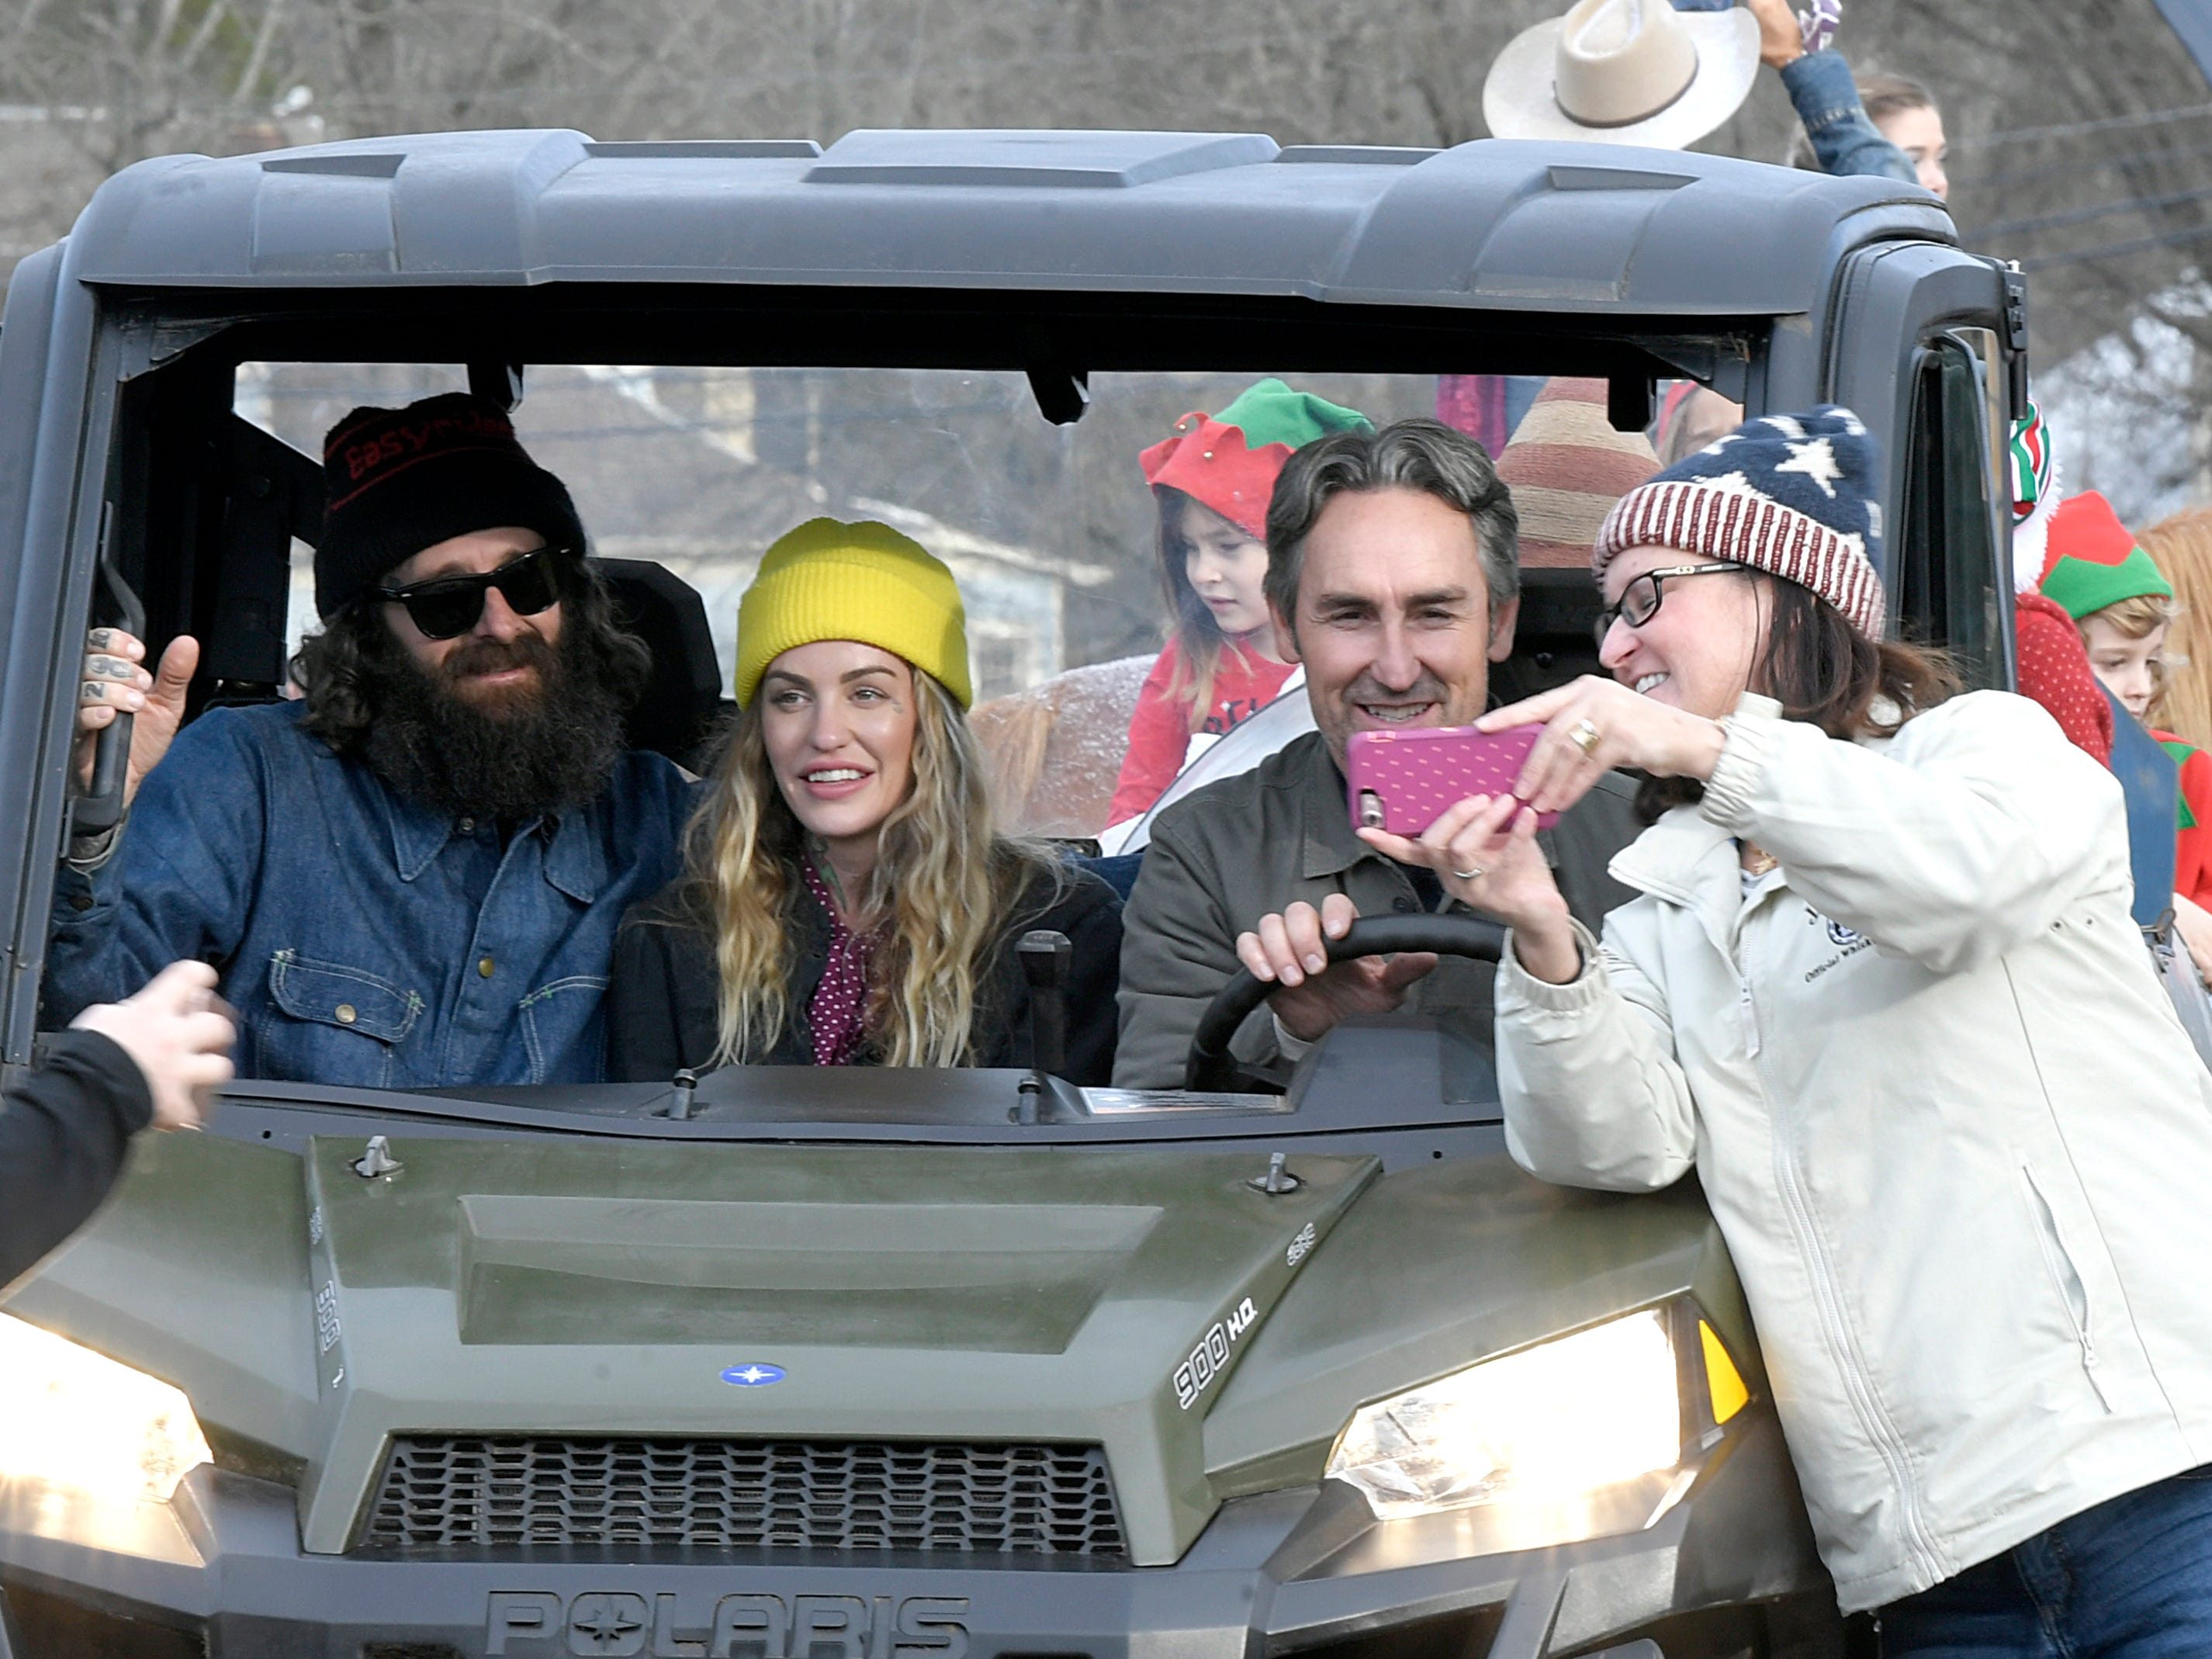 People take selfies with Mike Wolfe from the show American Pickers during the Leiper's Fork Christmas Parade on Saturday, Dec. 15, 2018.